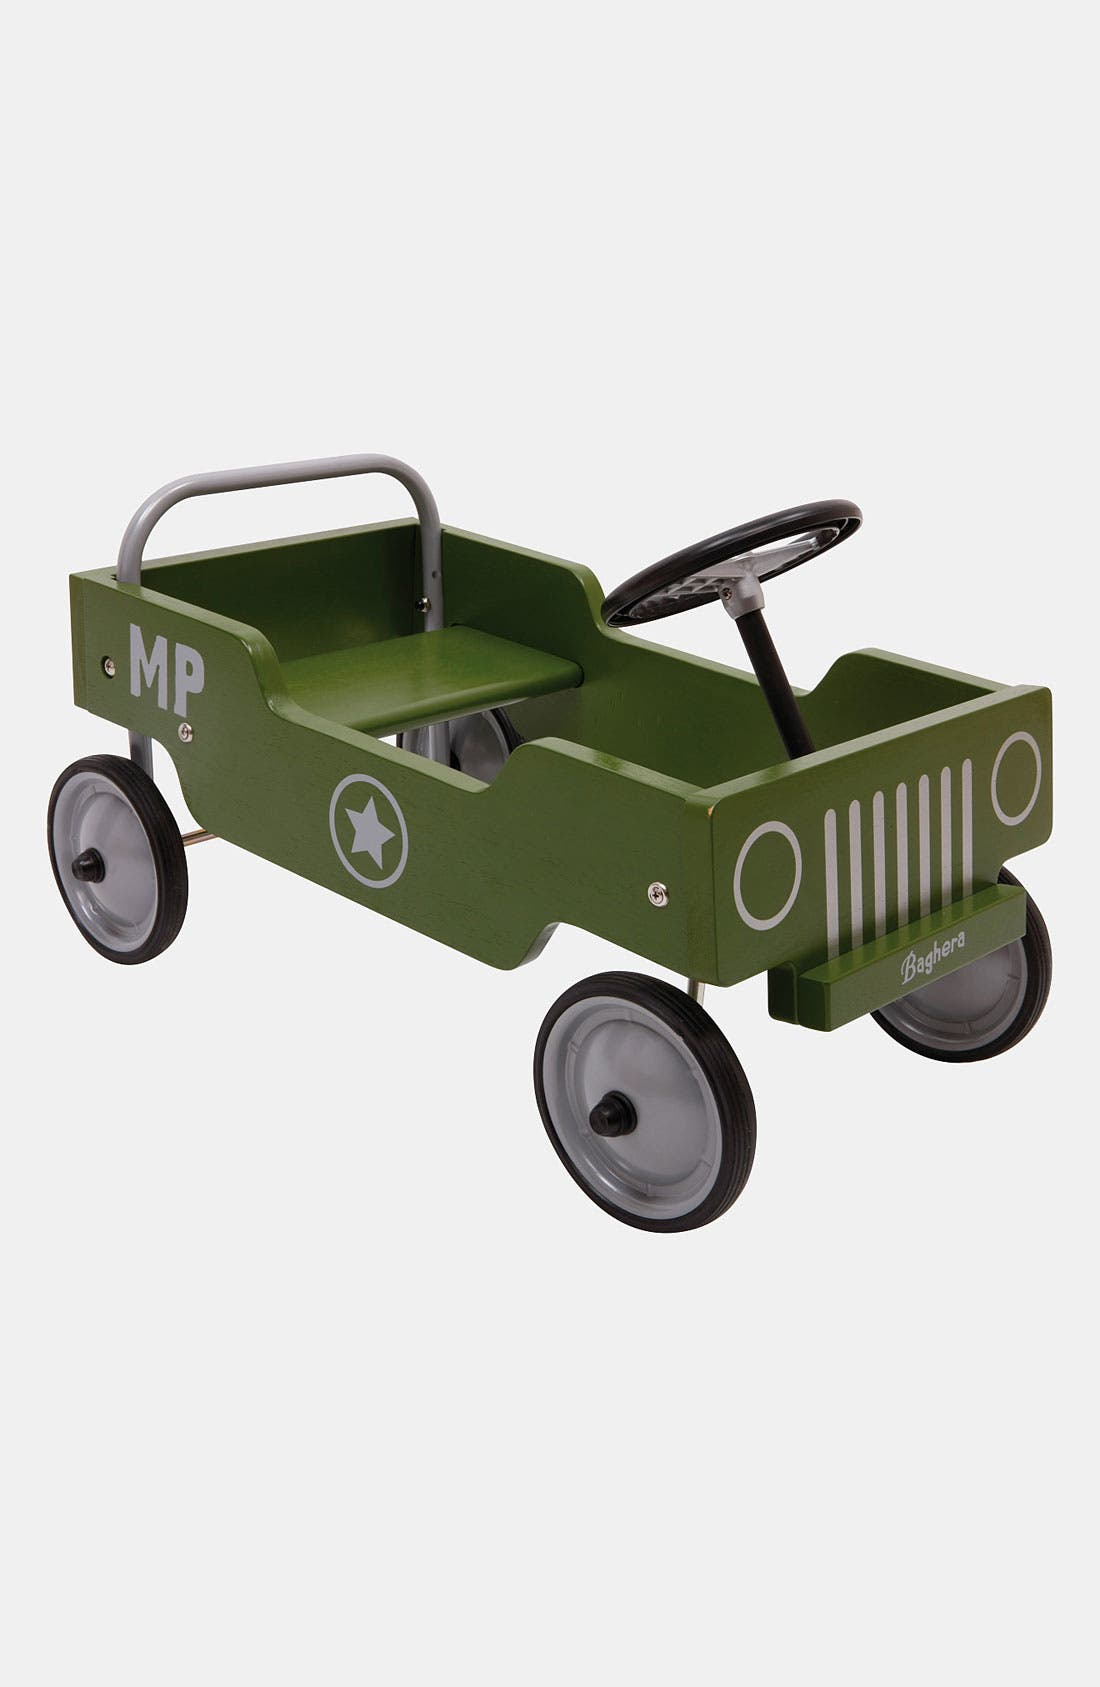 Alternate Image 1 Selected - Baghera 'Jeep' Ride-On Car (Toddler Boys)